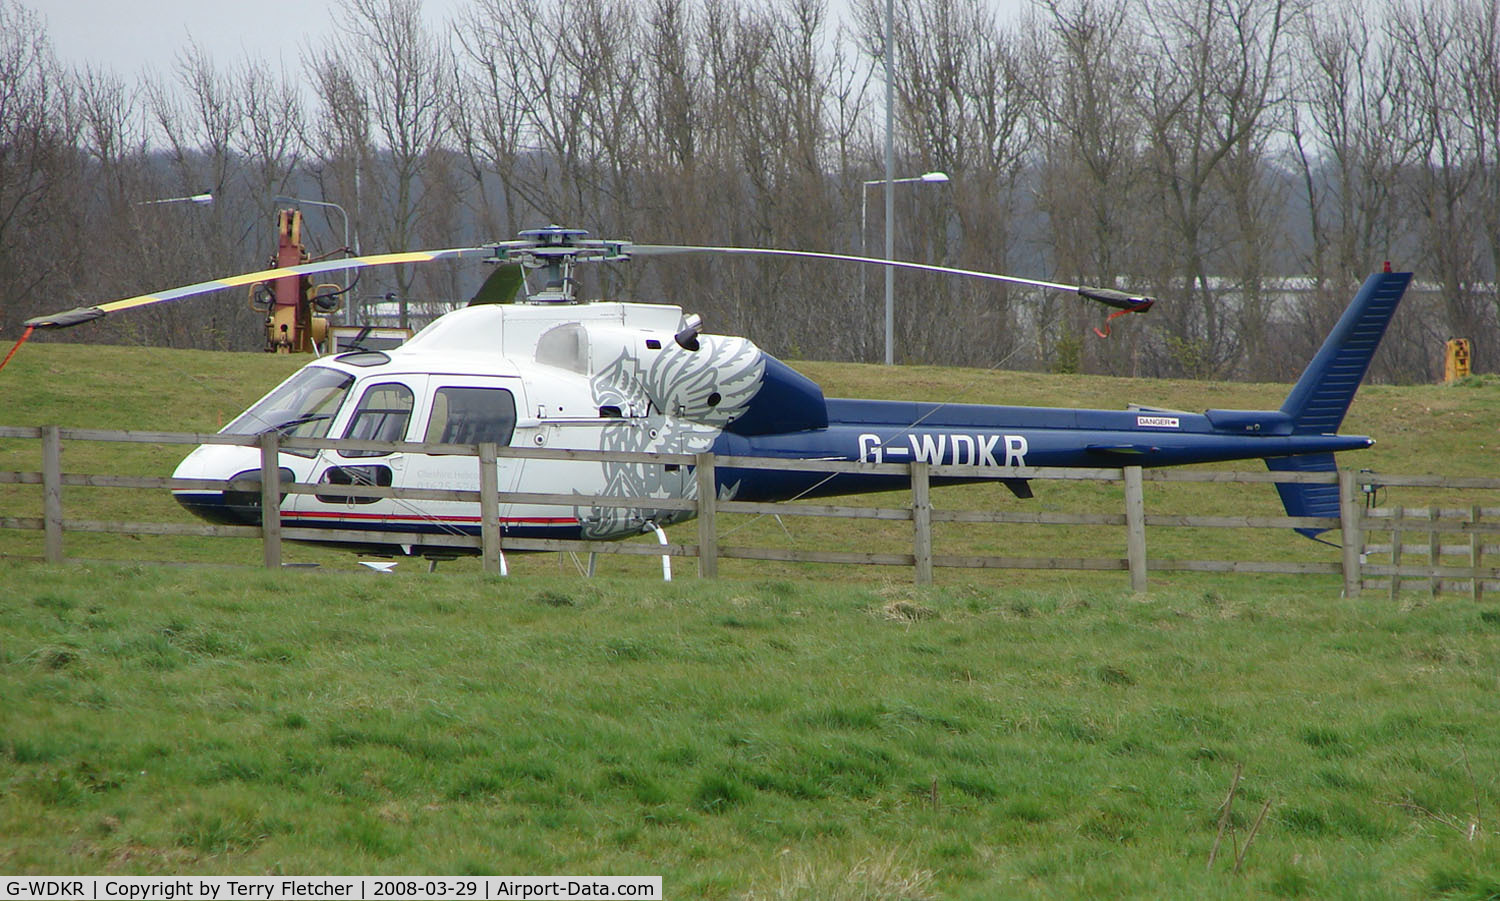 G-WDKR, 1981 Aerospatiale AS-355F-1 Ecureuil 2 C/N 5115, Noted at Farm House in Bedfordshire